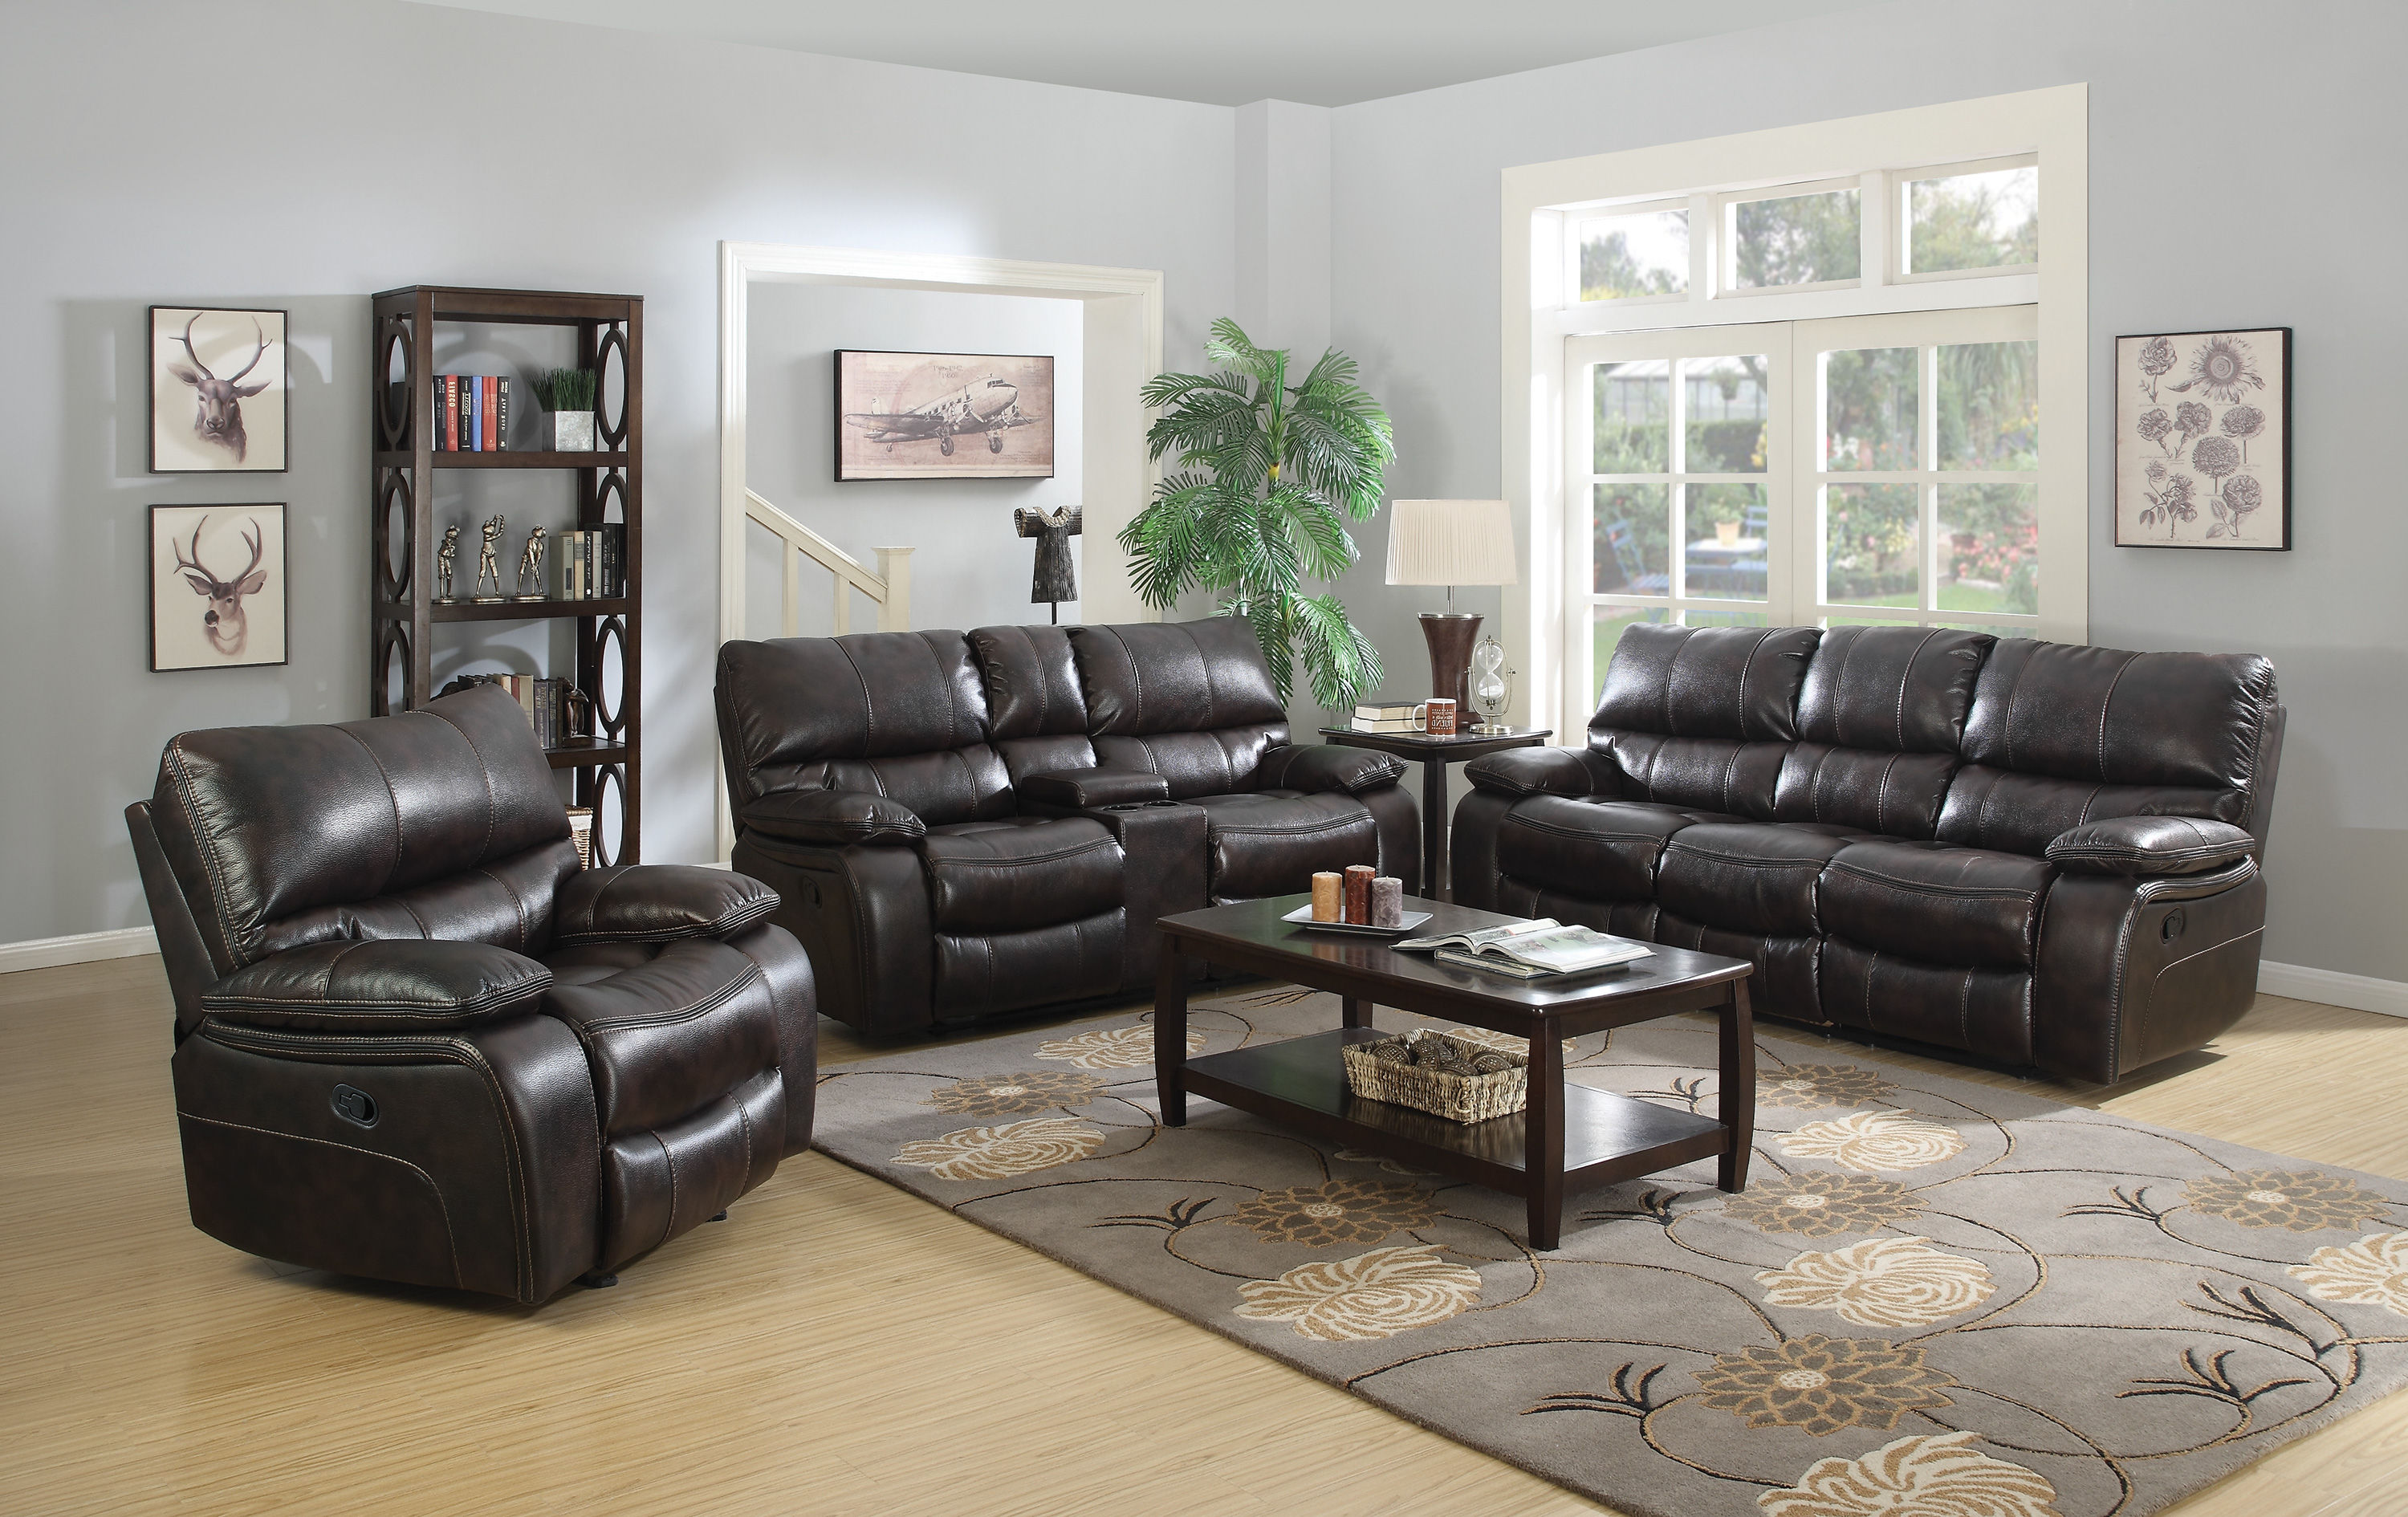 Coaster Furniture Willemse Motion Living Room Set The Classy Home